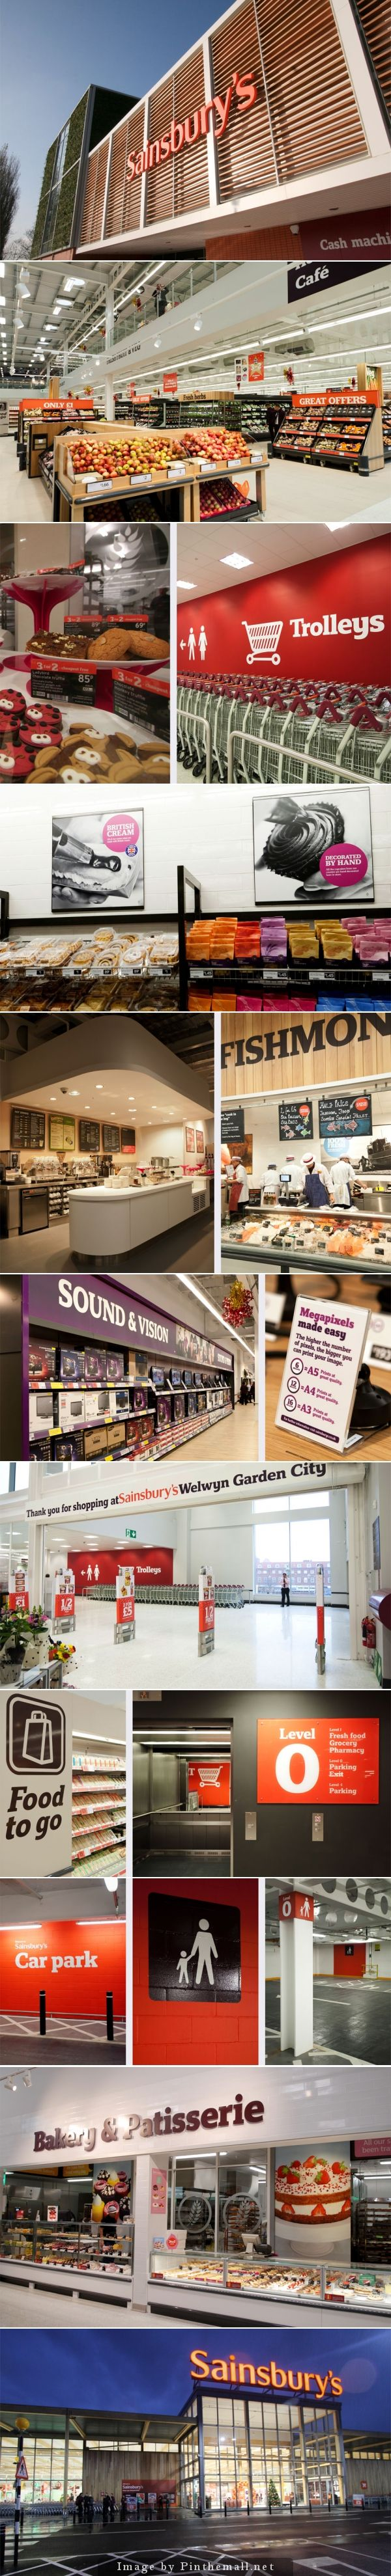 Nice  Best Ideas About Welwyn Garden City Fc On Pinterest  Printed  With Outstanding Welwyn Garden City Is A Complete Refresh Of The Instore Brand Look And  Feel As With Extraordinary Gardens For U Also Garden Lamp Posts Uk In Addition Slabs For Garden And Haskins Garden Centre Worthing As Well As Soil Improvement Techniques Garden Additionally Garden Recording Studio From Ukpinterestcom With   Outstanding  Best Ideas About Welwyn Garden City Fc On Pinterest  Printed  With Extraordinary Welwyn Garden City Is A Complete Refresh Of The Instore Brand Look And  Feel As And Nice Gardens For U Also Garden Lamp Posts Uk In Addition Slabs For Garden From Ukpinterestcom